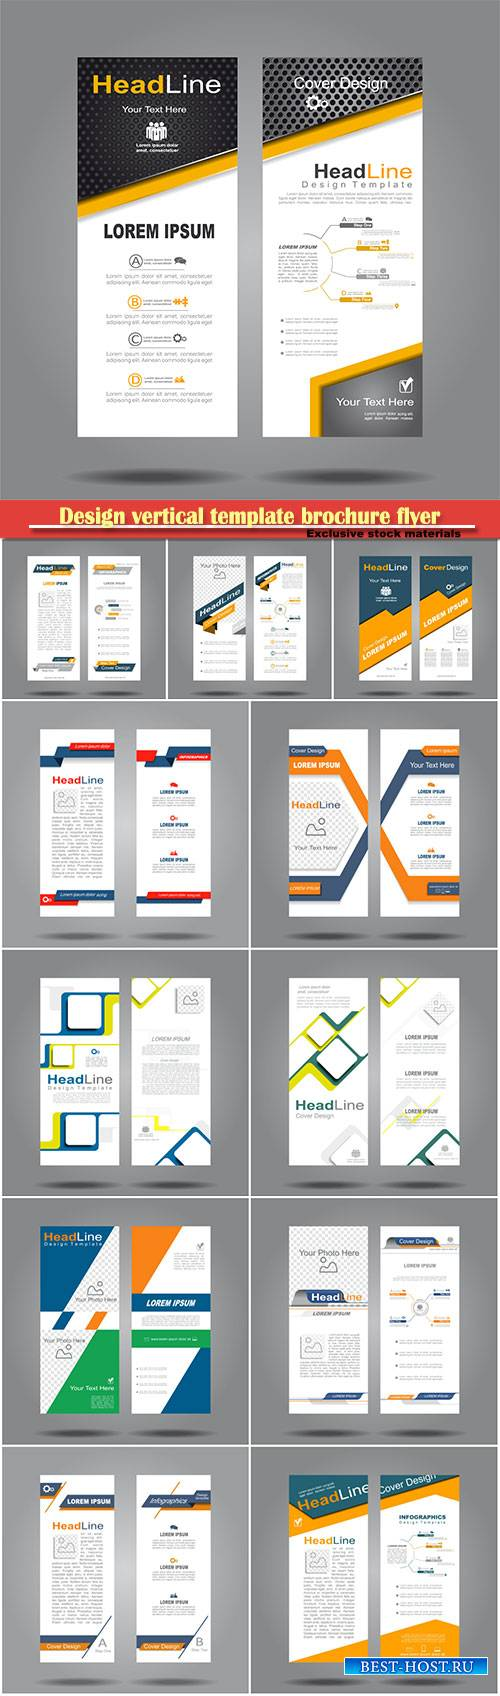 Design vertical template brochure flyer vector banner